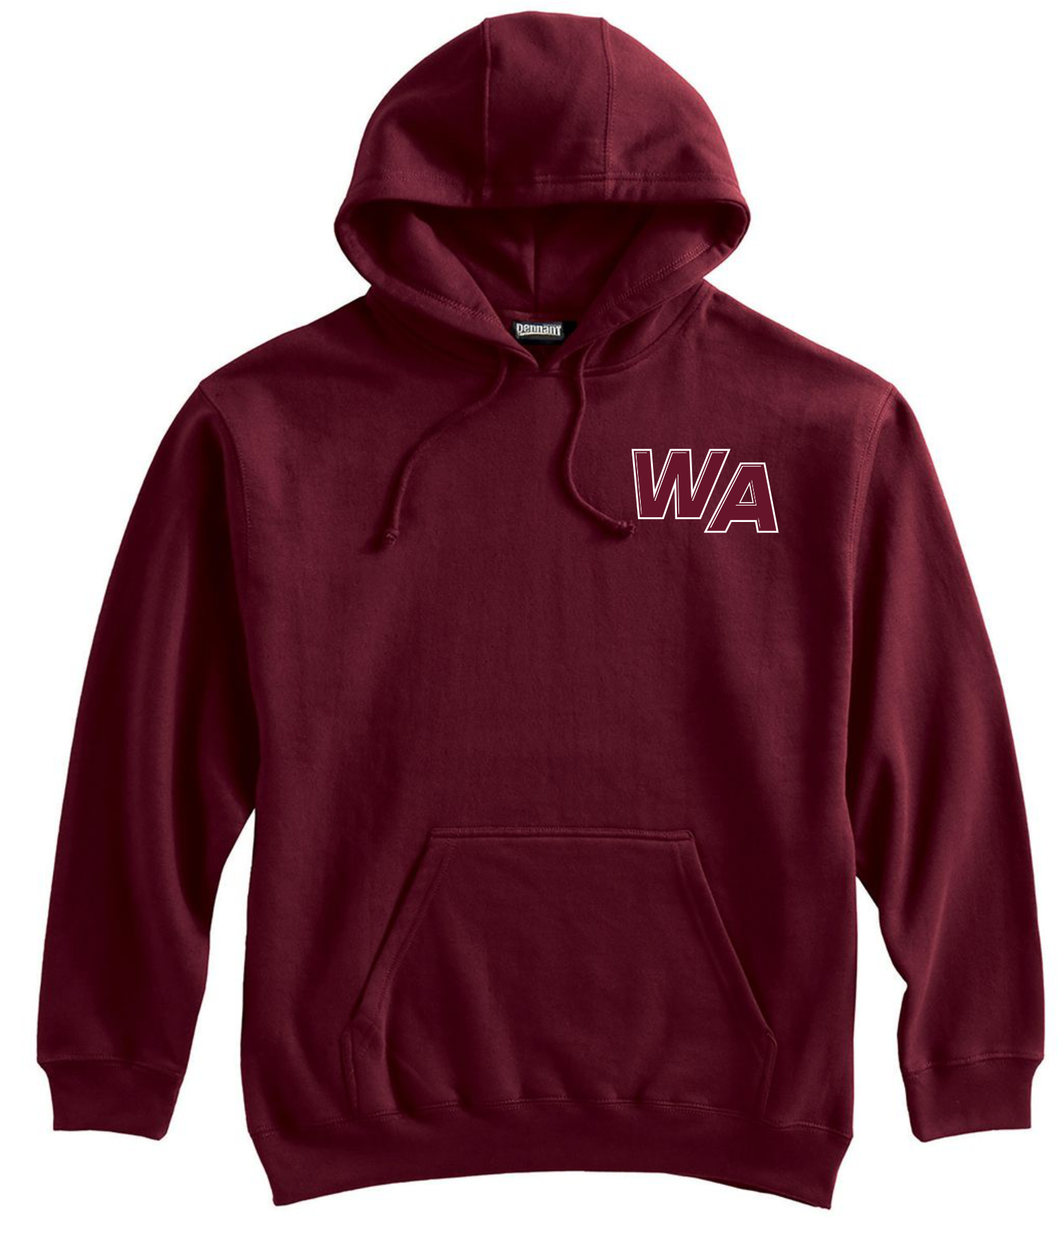 WA Cafeteria Pullover Sweatshirt / Pennant 701